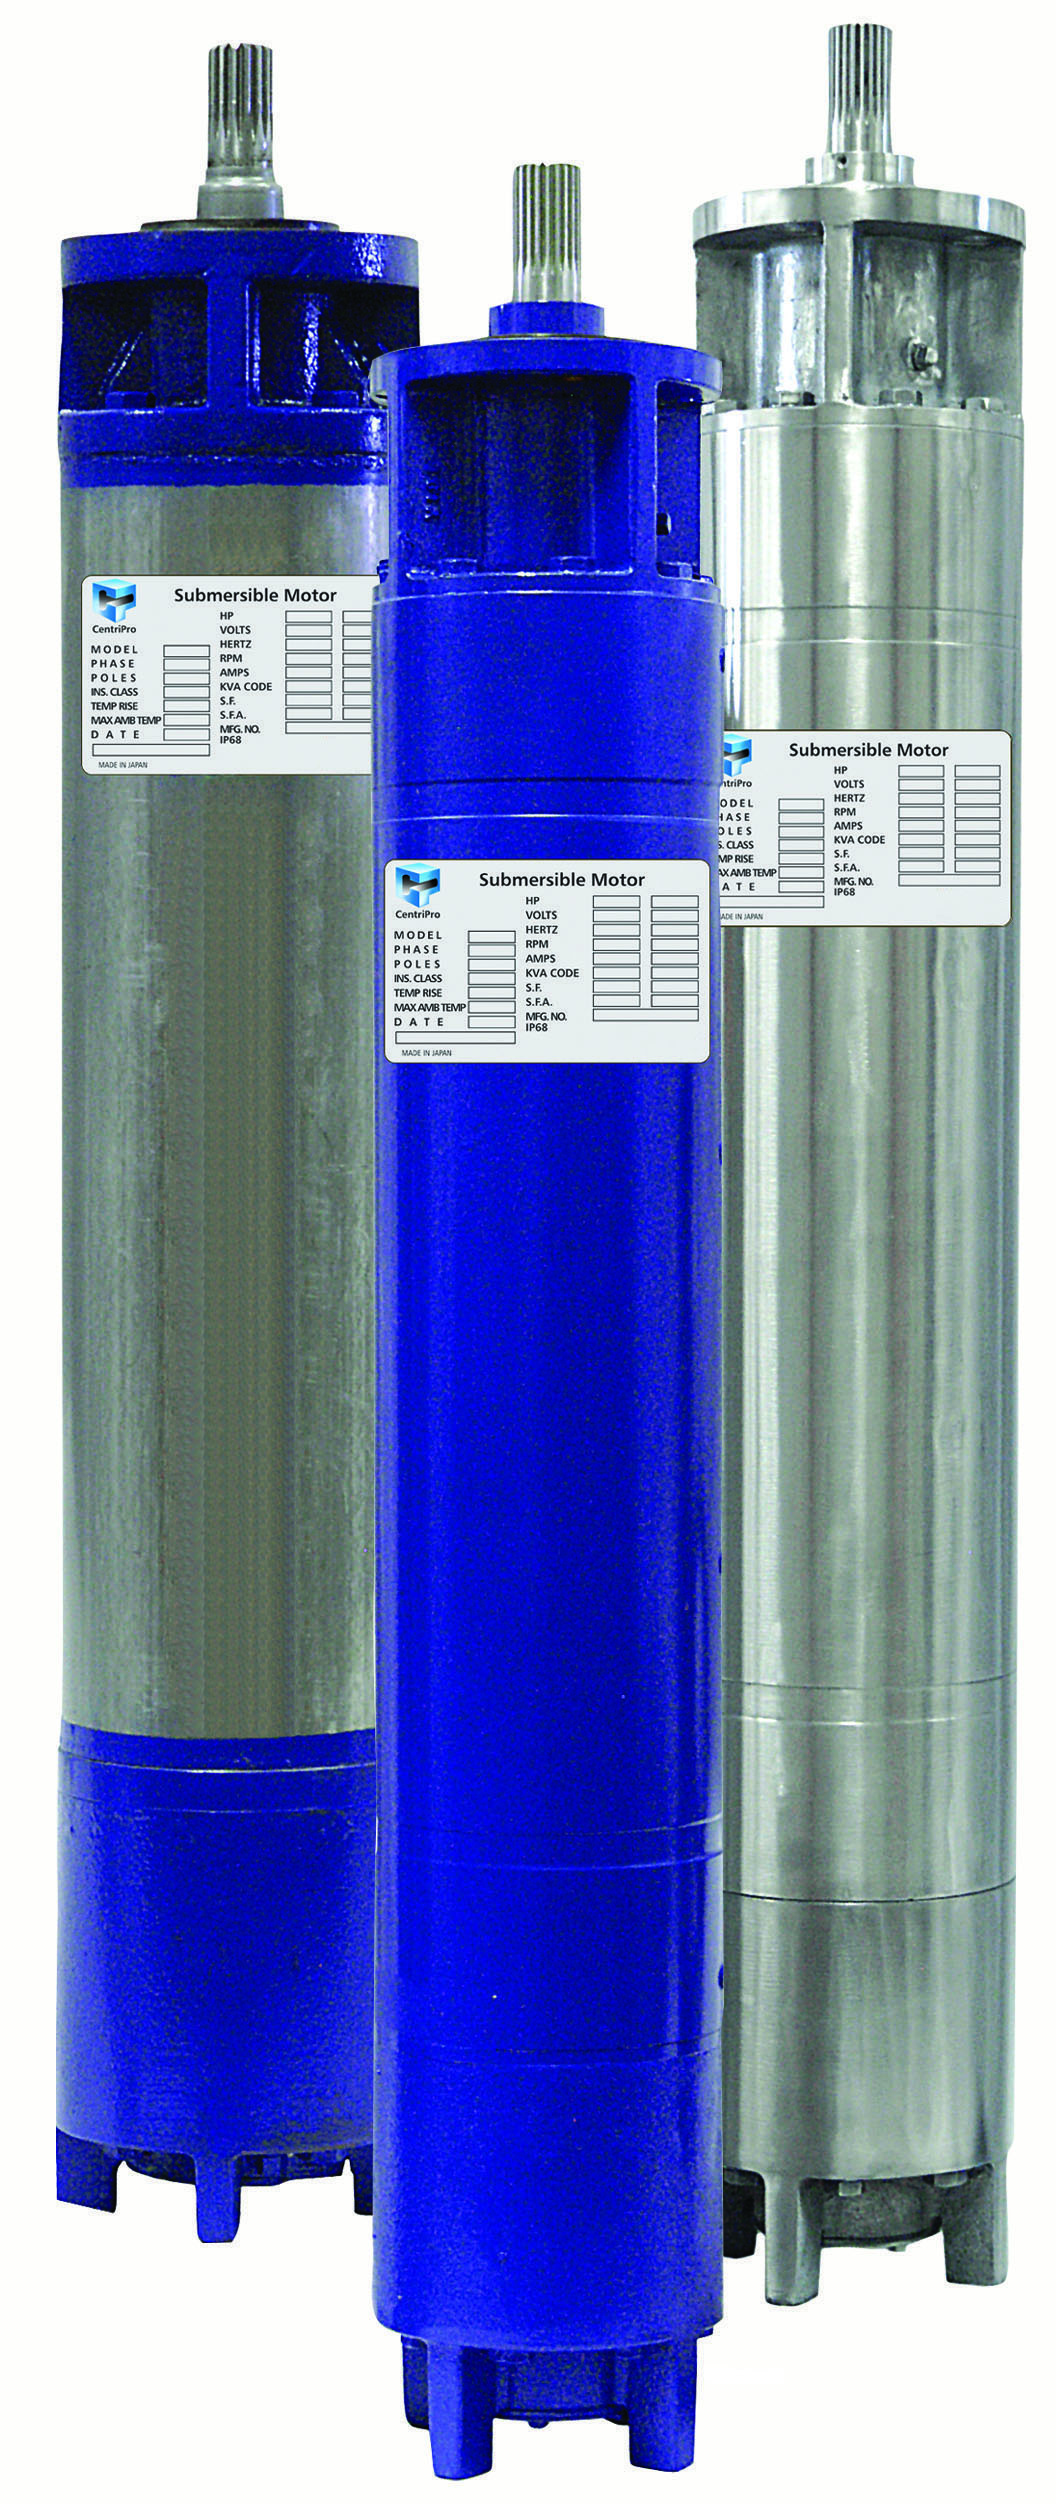 hight resolution of centripro 6 and larger deep well submersible motors